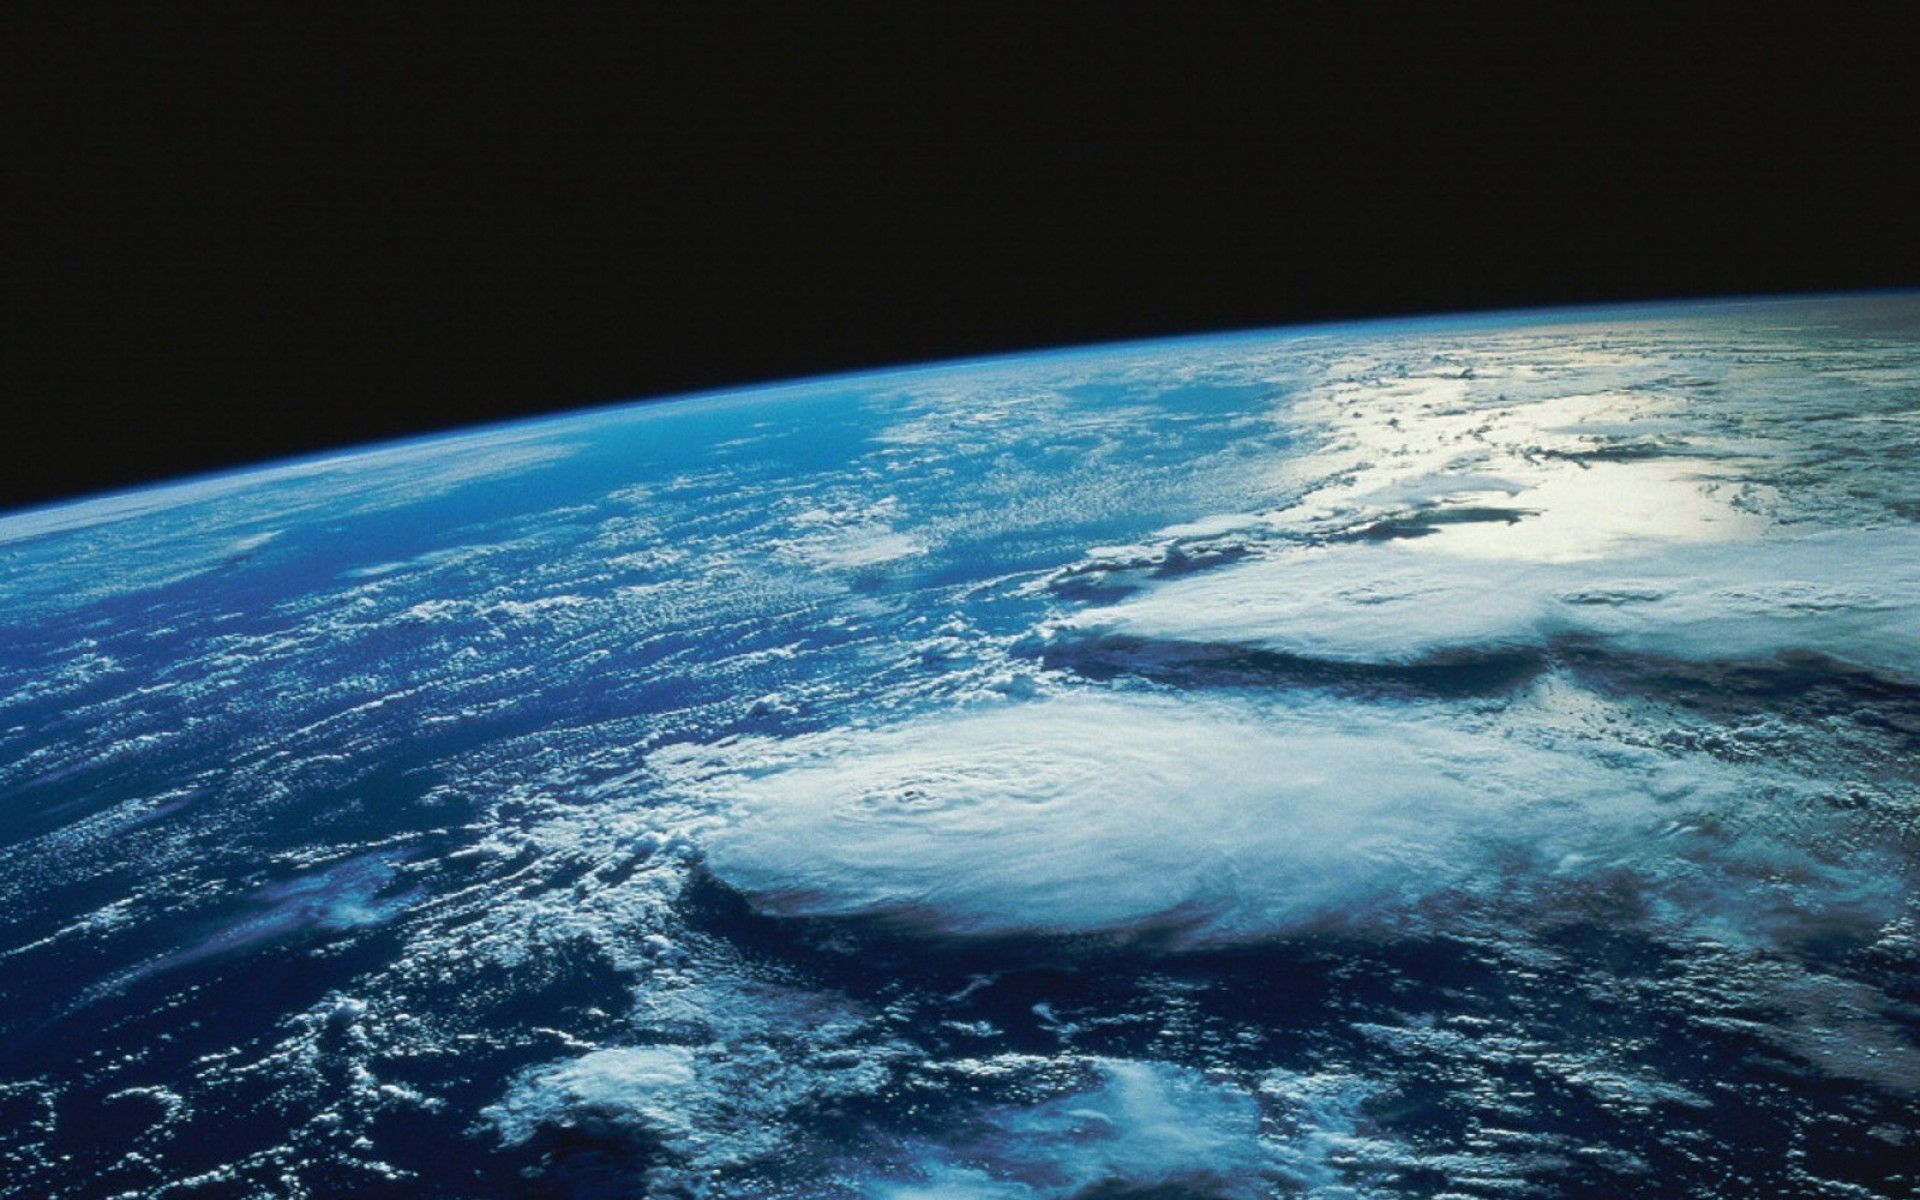 Wallpaper X Px Atmosphere Clouds Earth